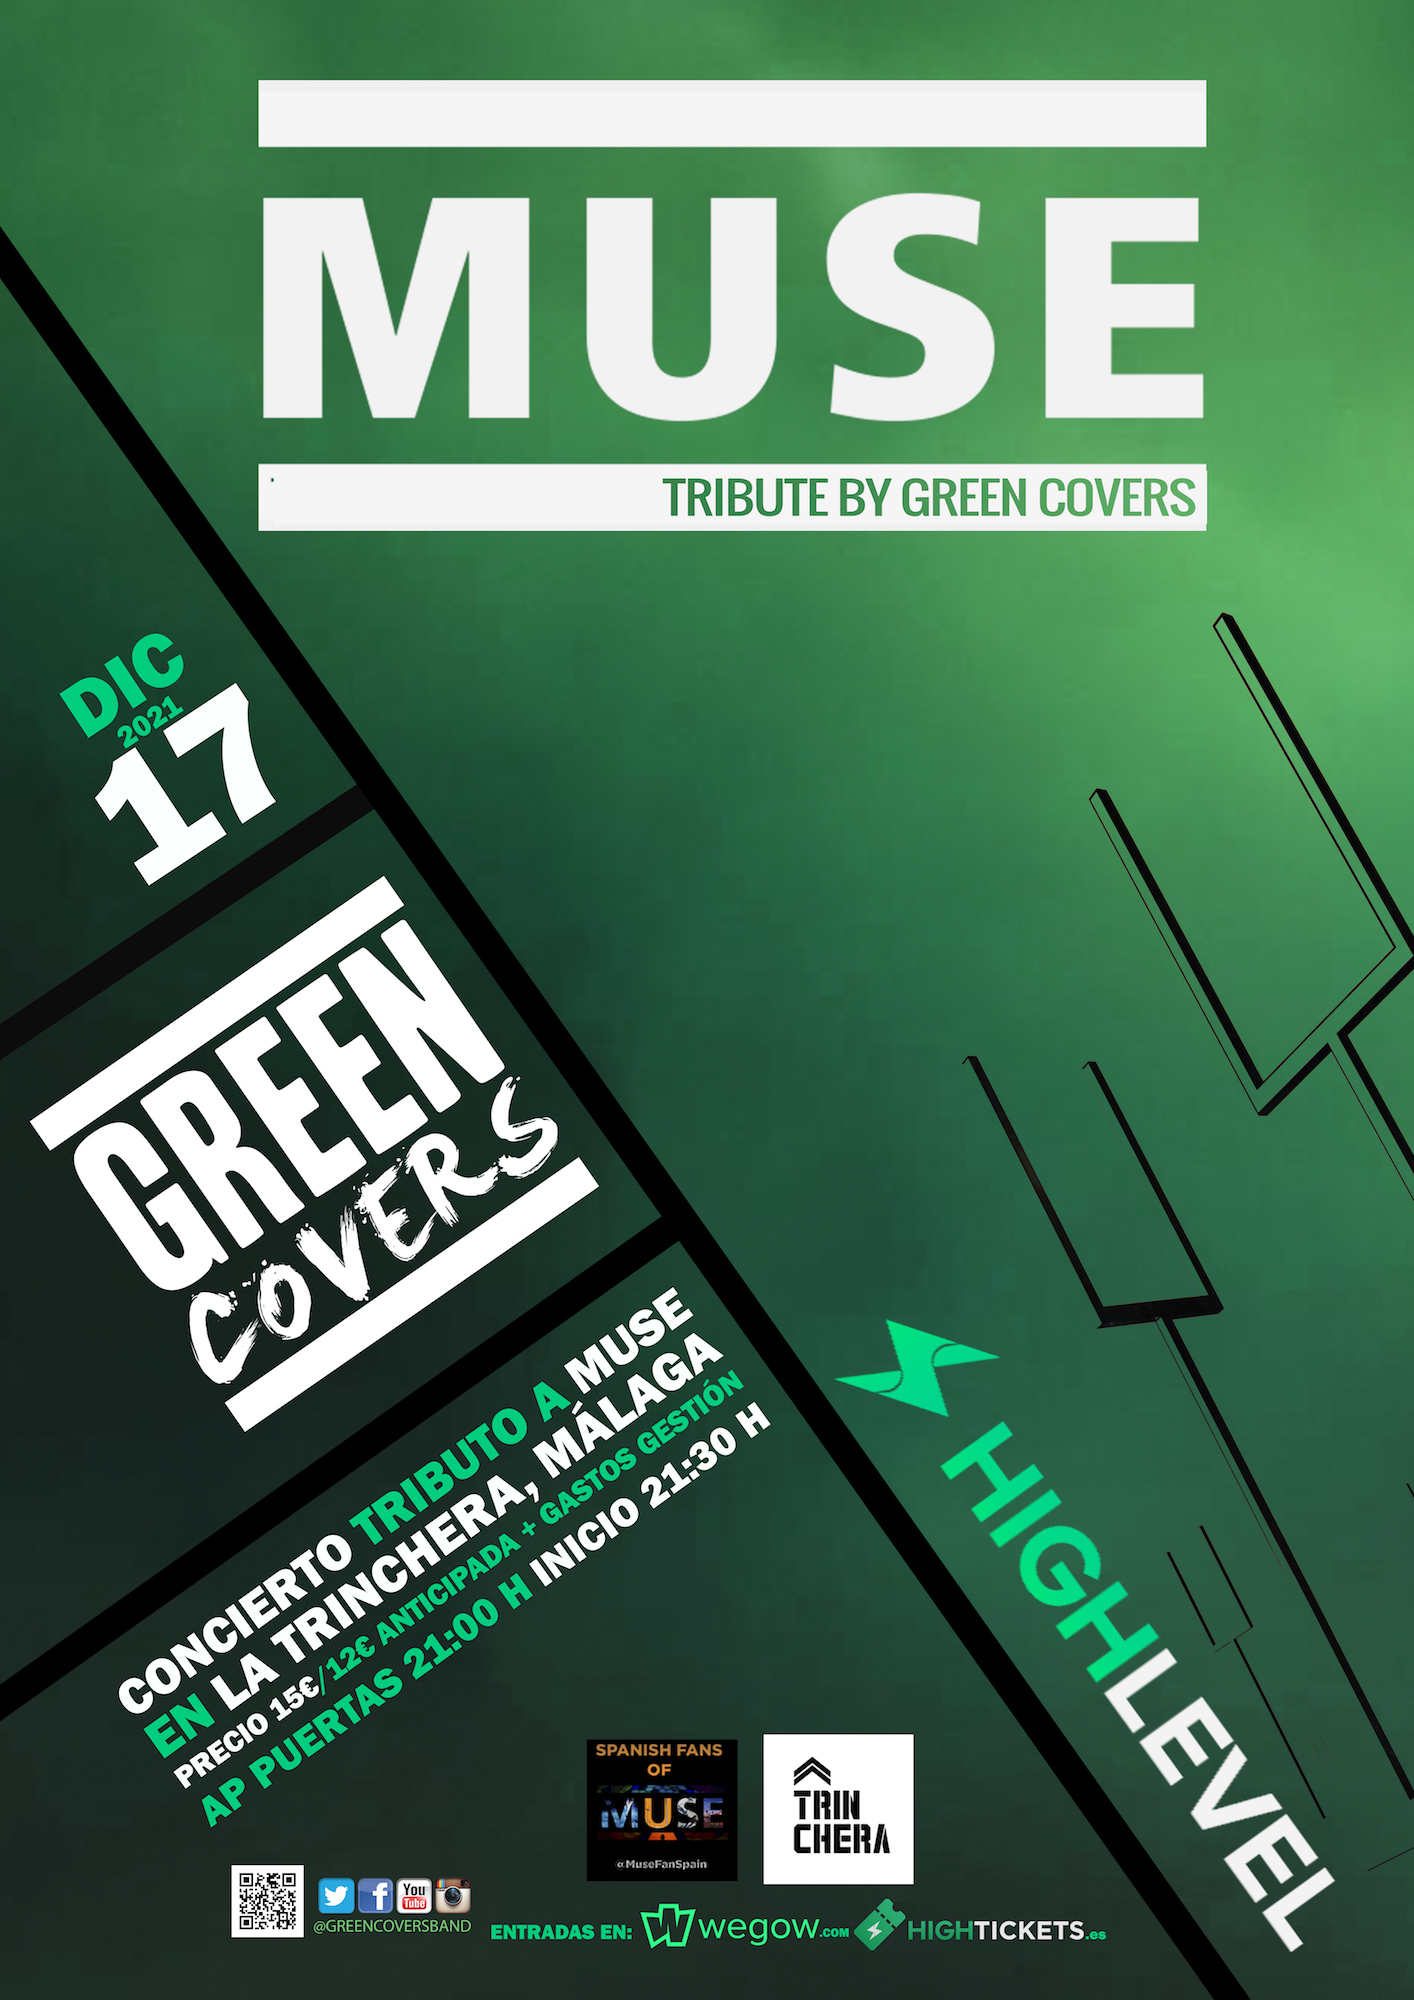 muse tribute by green covers malaga 16255258174218757